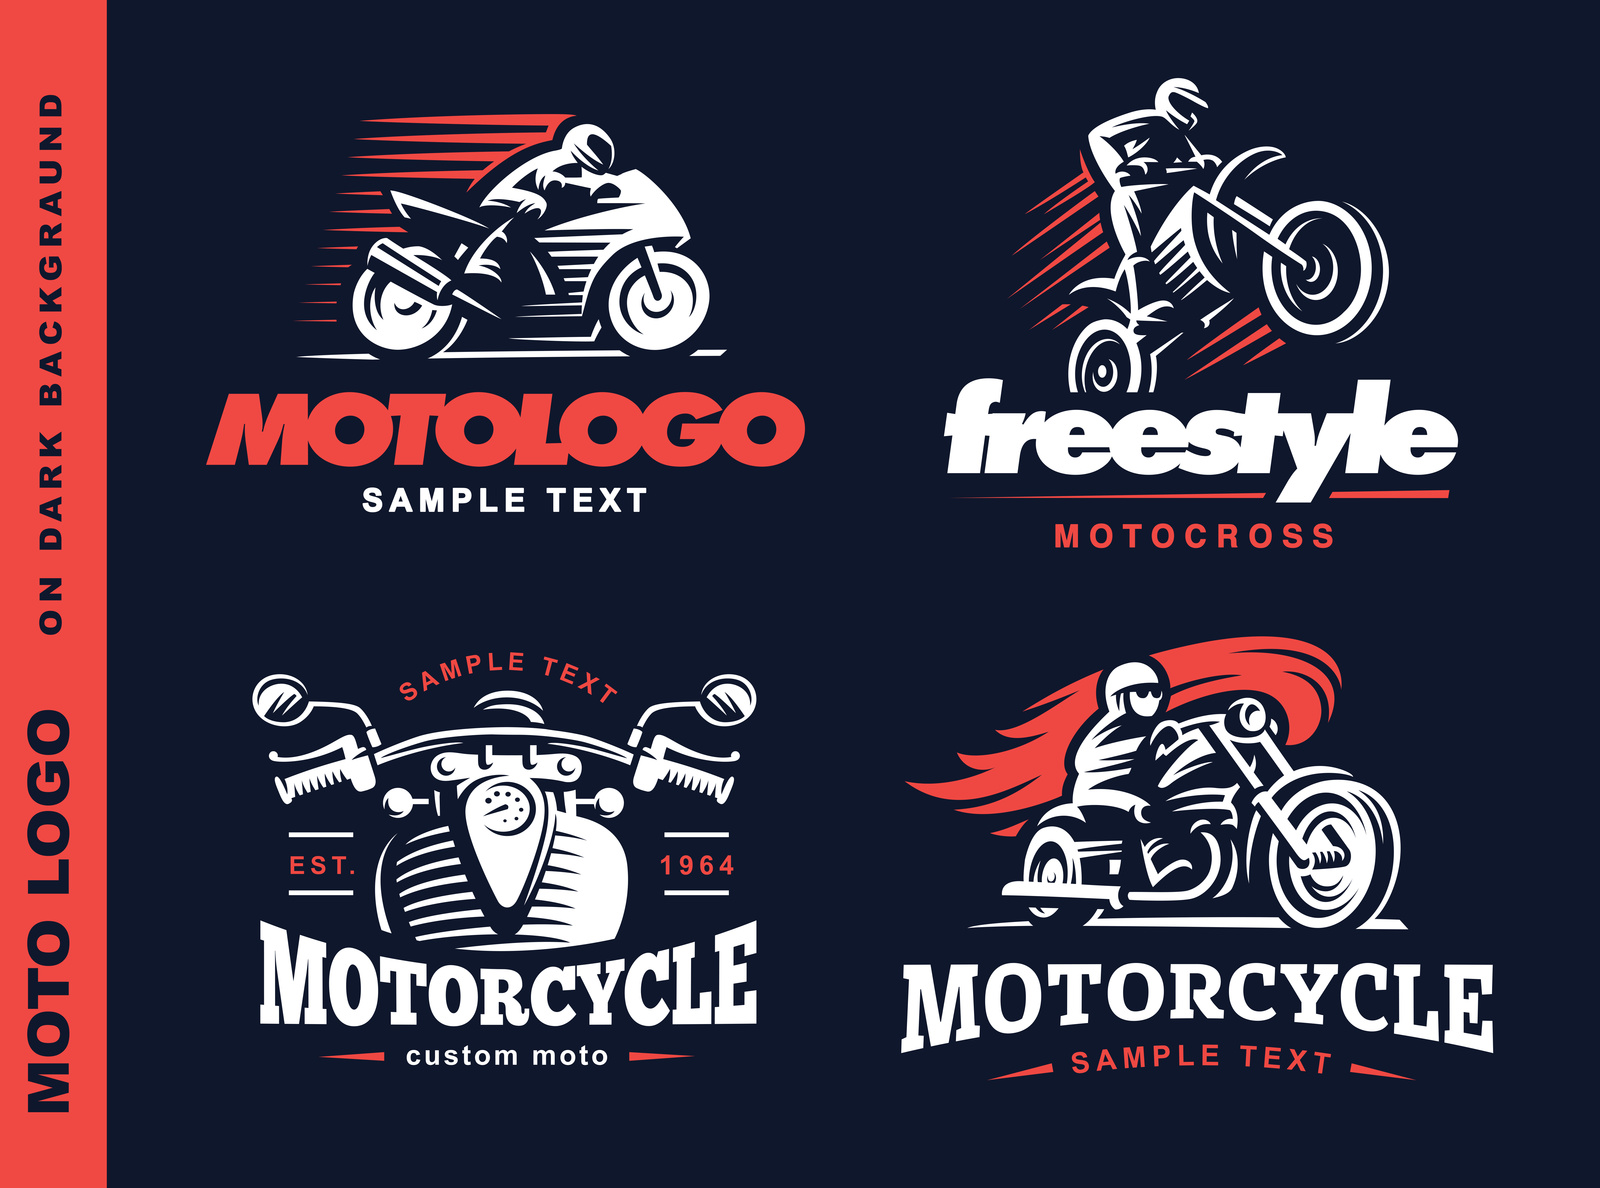 Motorcycle logo images